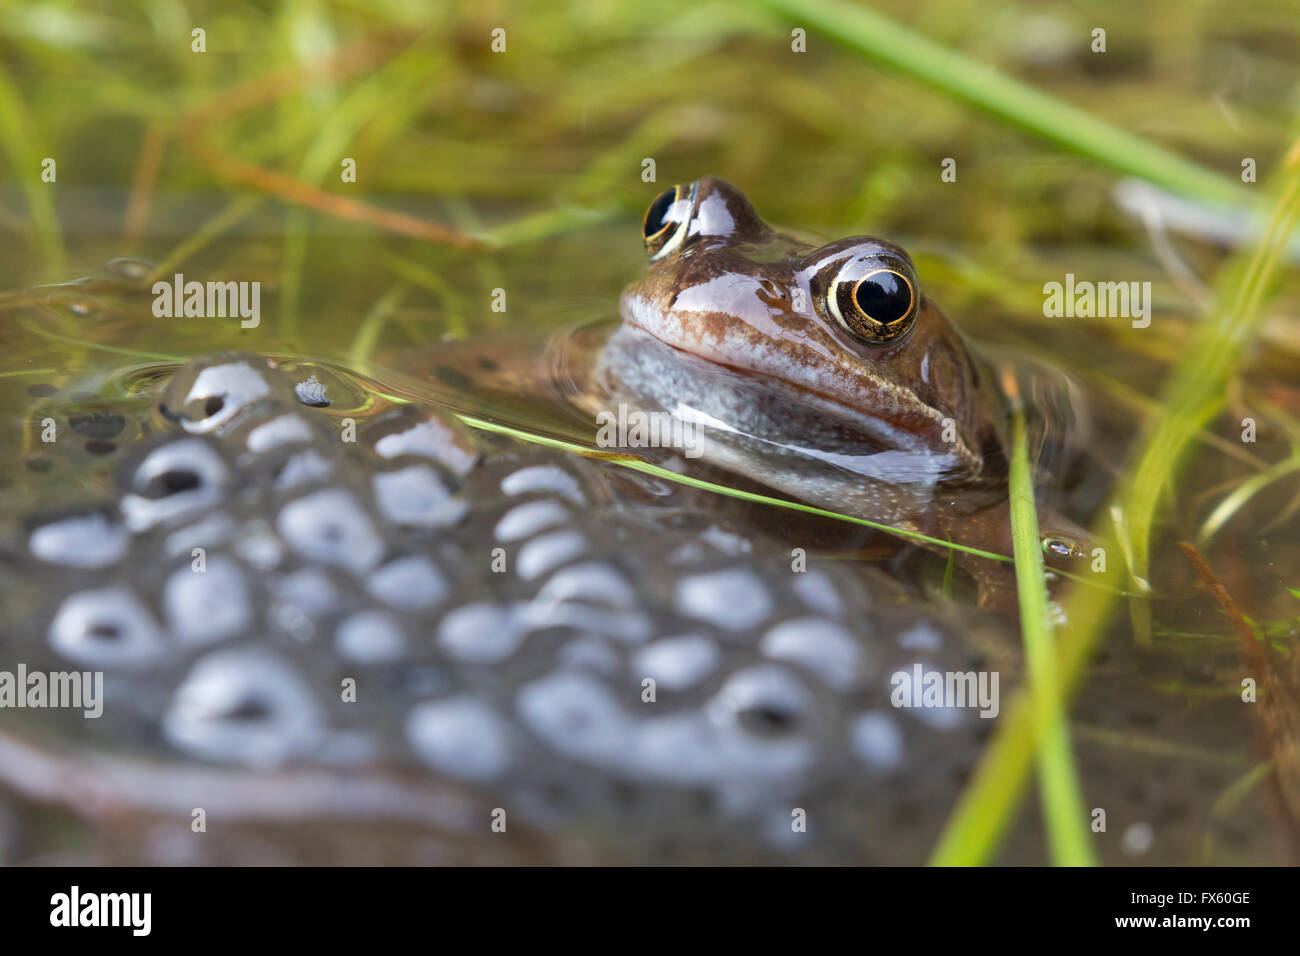 Common frogs (Rana temporaria) in spawning pond, Northumberland, UK - Stock Image